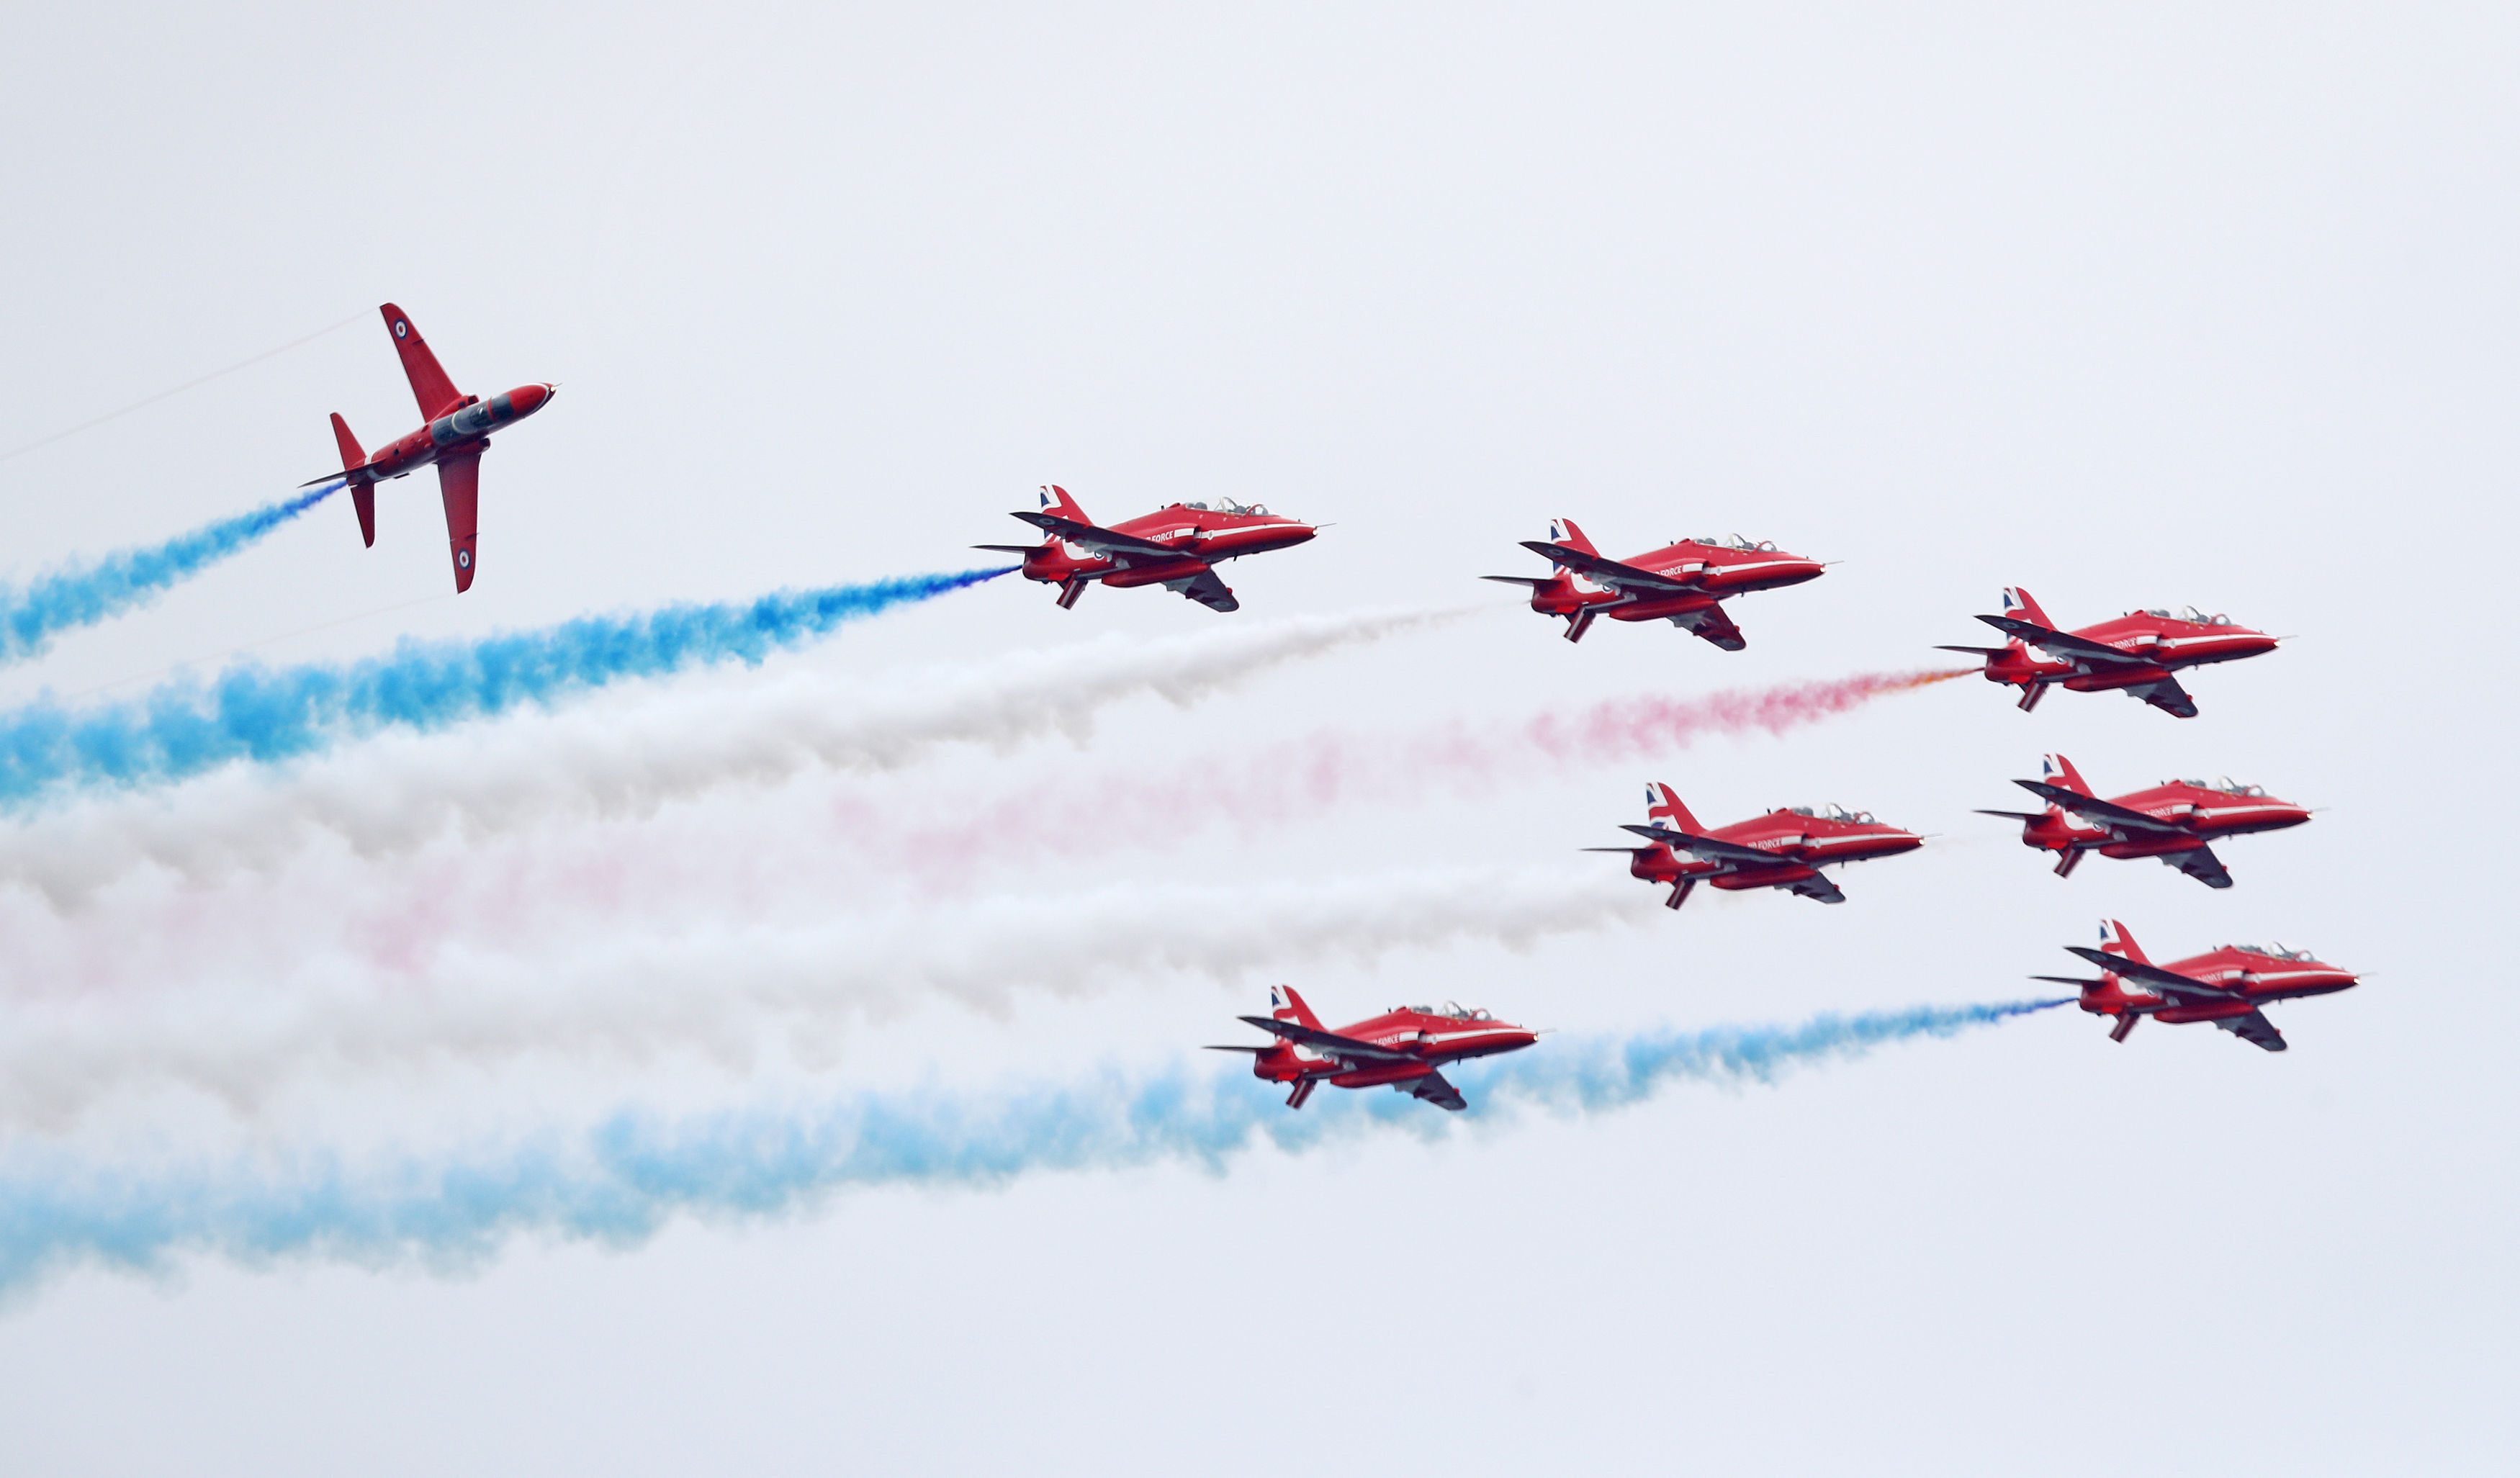 A Red Arrows jet has crashed after an incident at RAF Valley in north Wales, the Ministry of Defence has said. (Owen Humphreys/PA Wire)